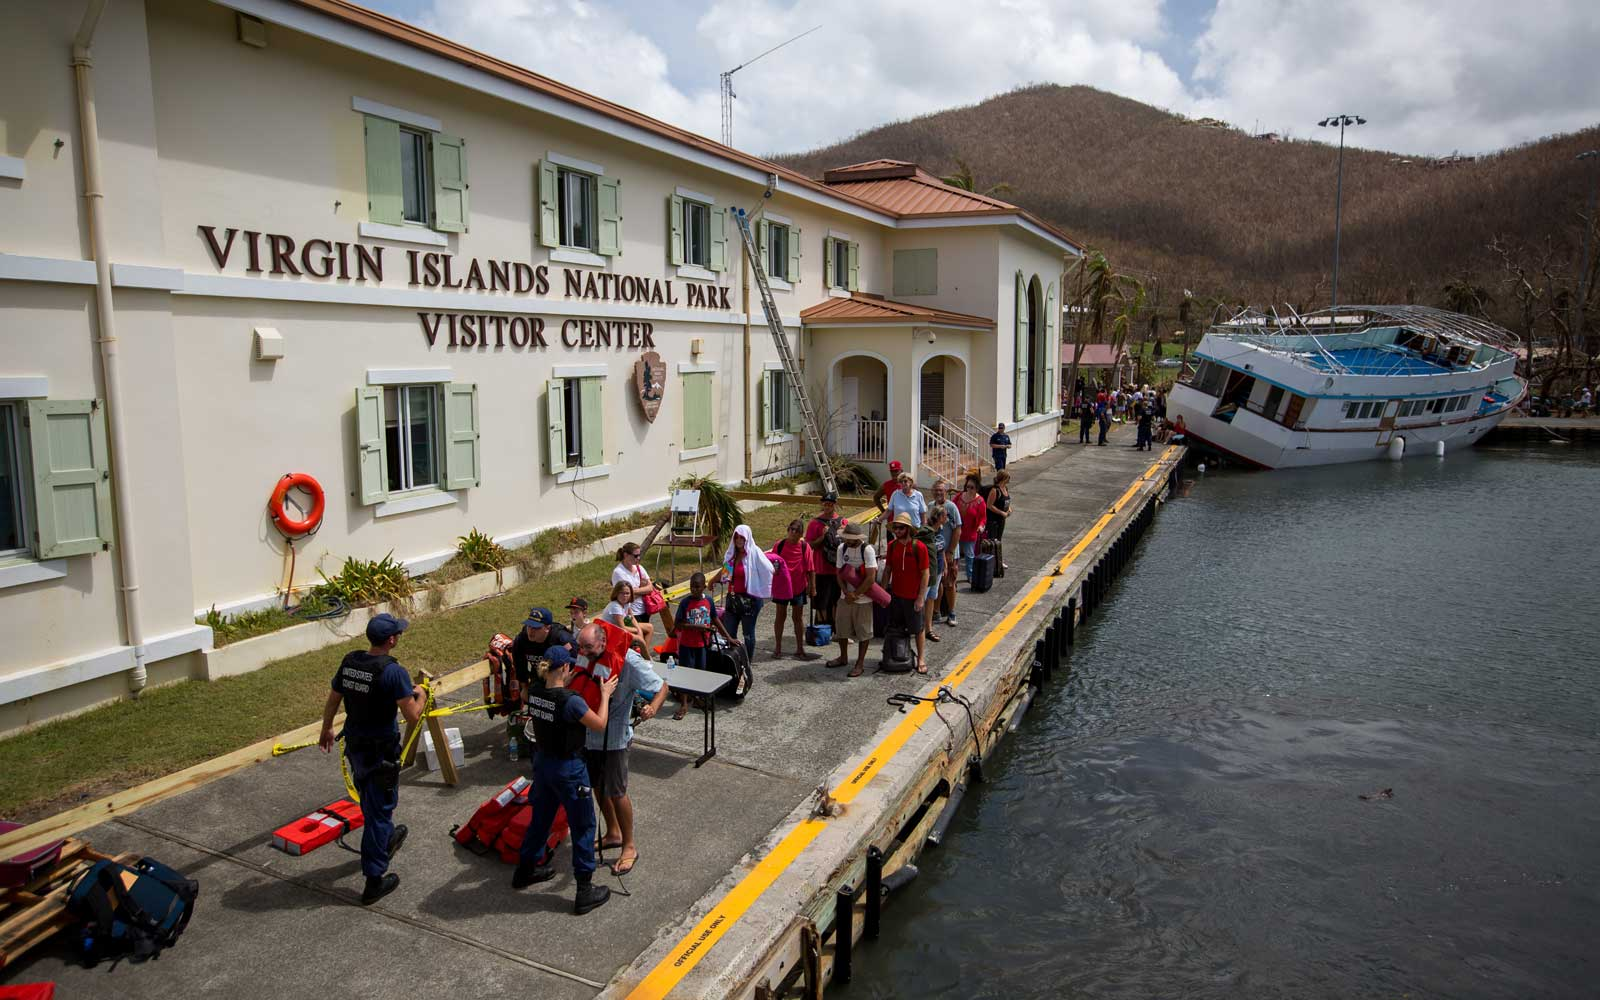 Members of the U.S. Coast Guard process evacuees after Hurricane Irma in St John, U.S. Virgin Islands, on Tuesday, Sept. 12, 2017